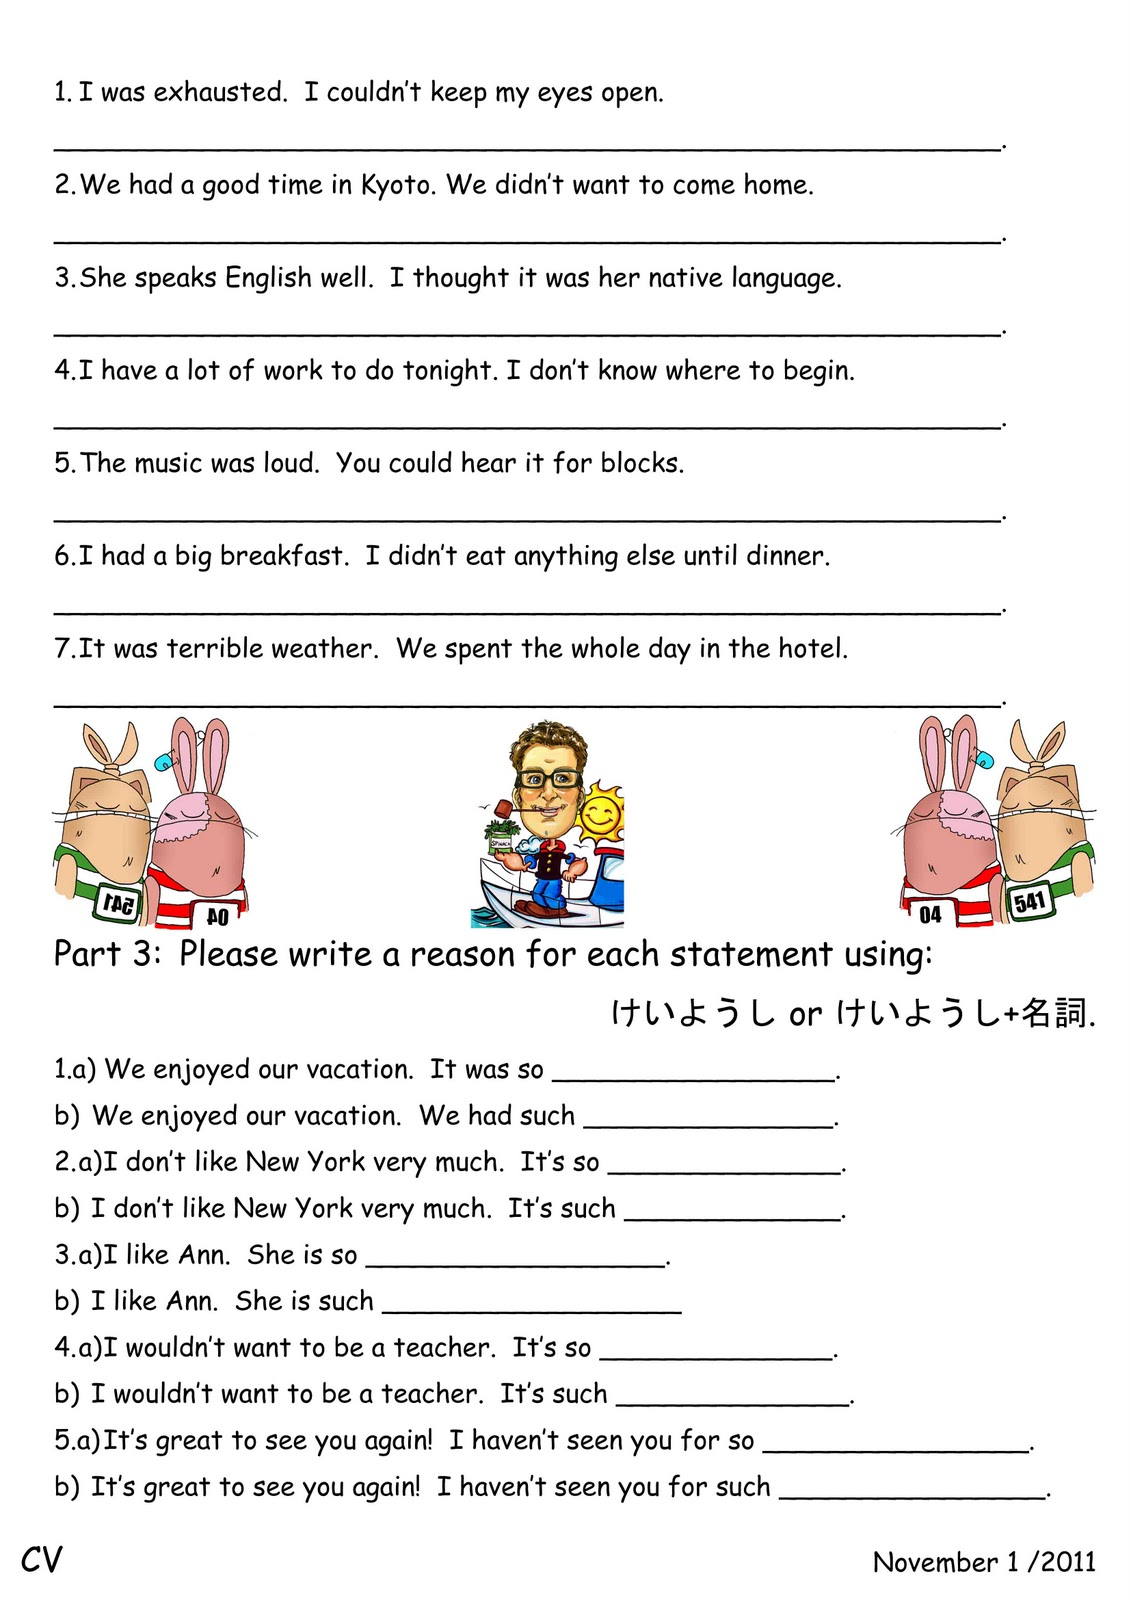 Canadian Voice English School Nagano  So And Such Explanation